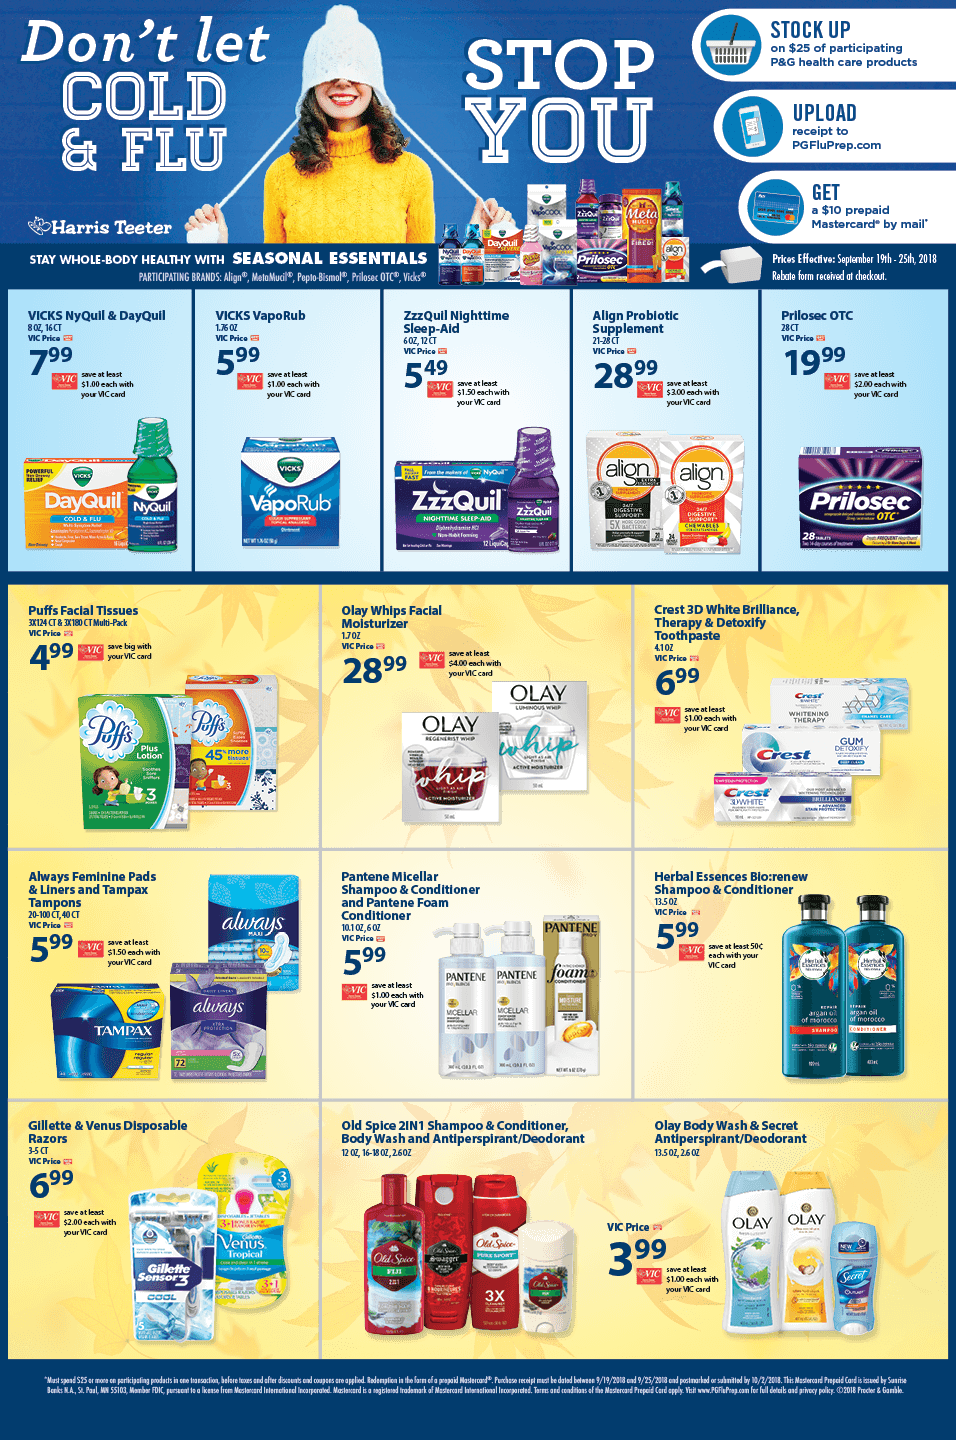 P&G Offers